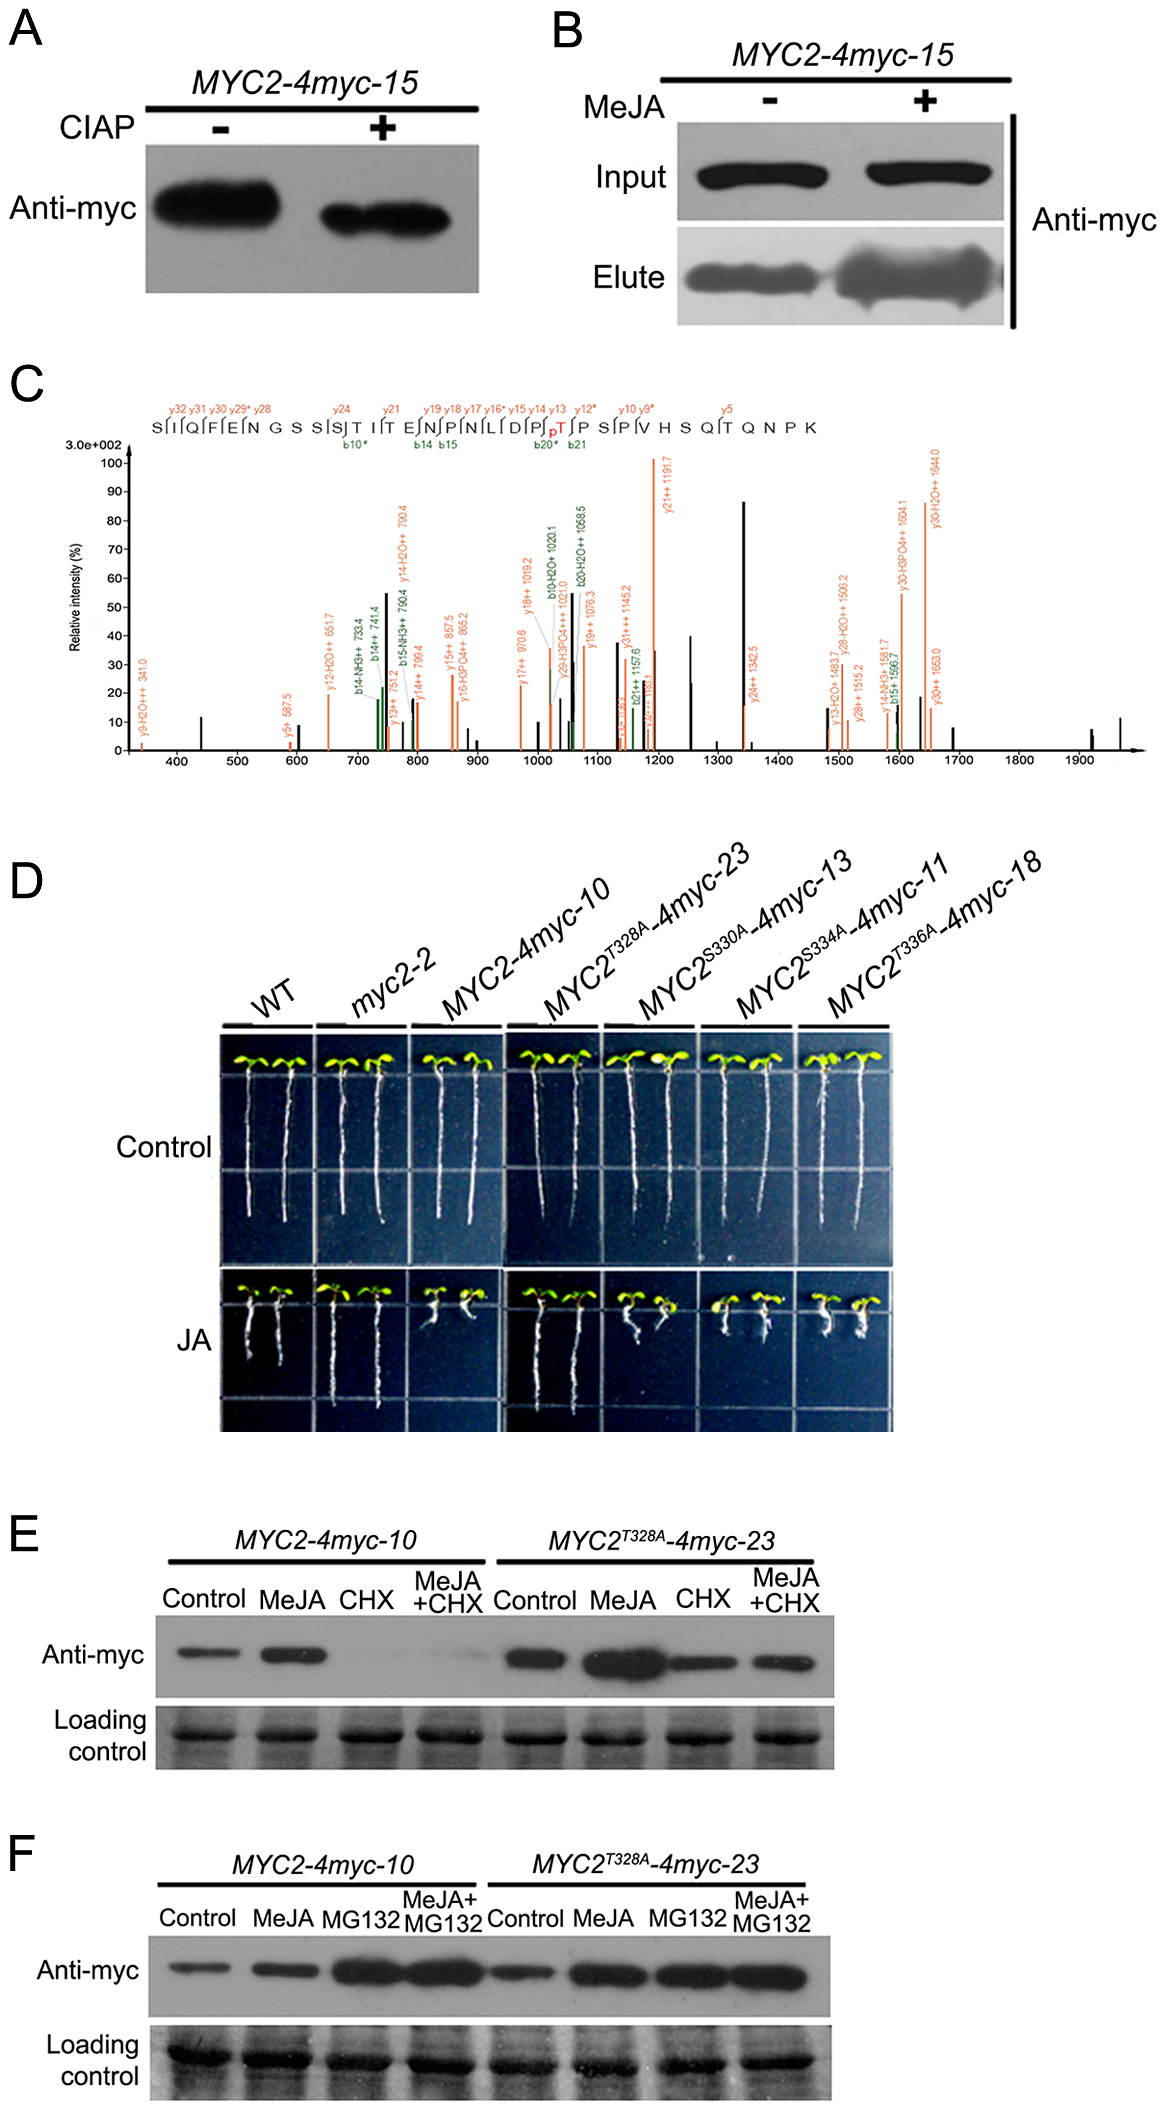 Phosphorylation of MYC2 at Thr328 Affects Its Turnover.